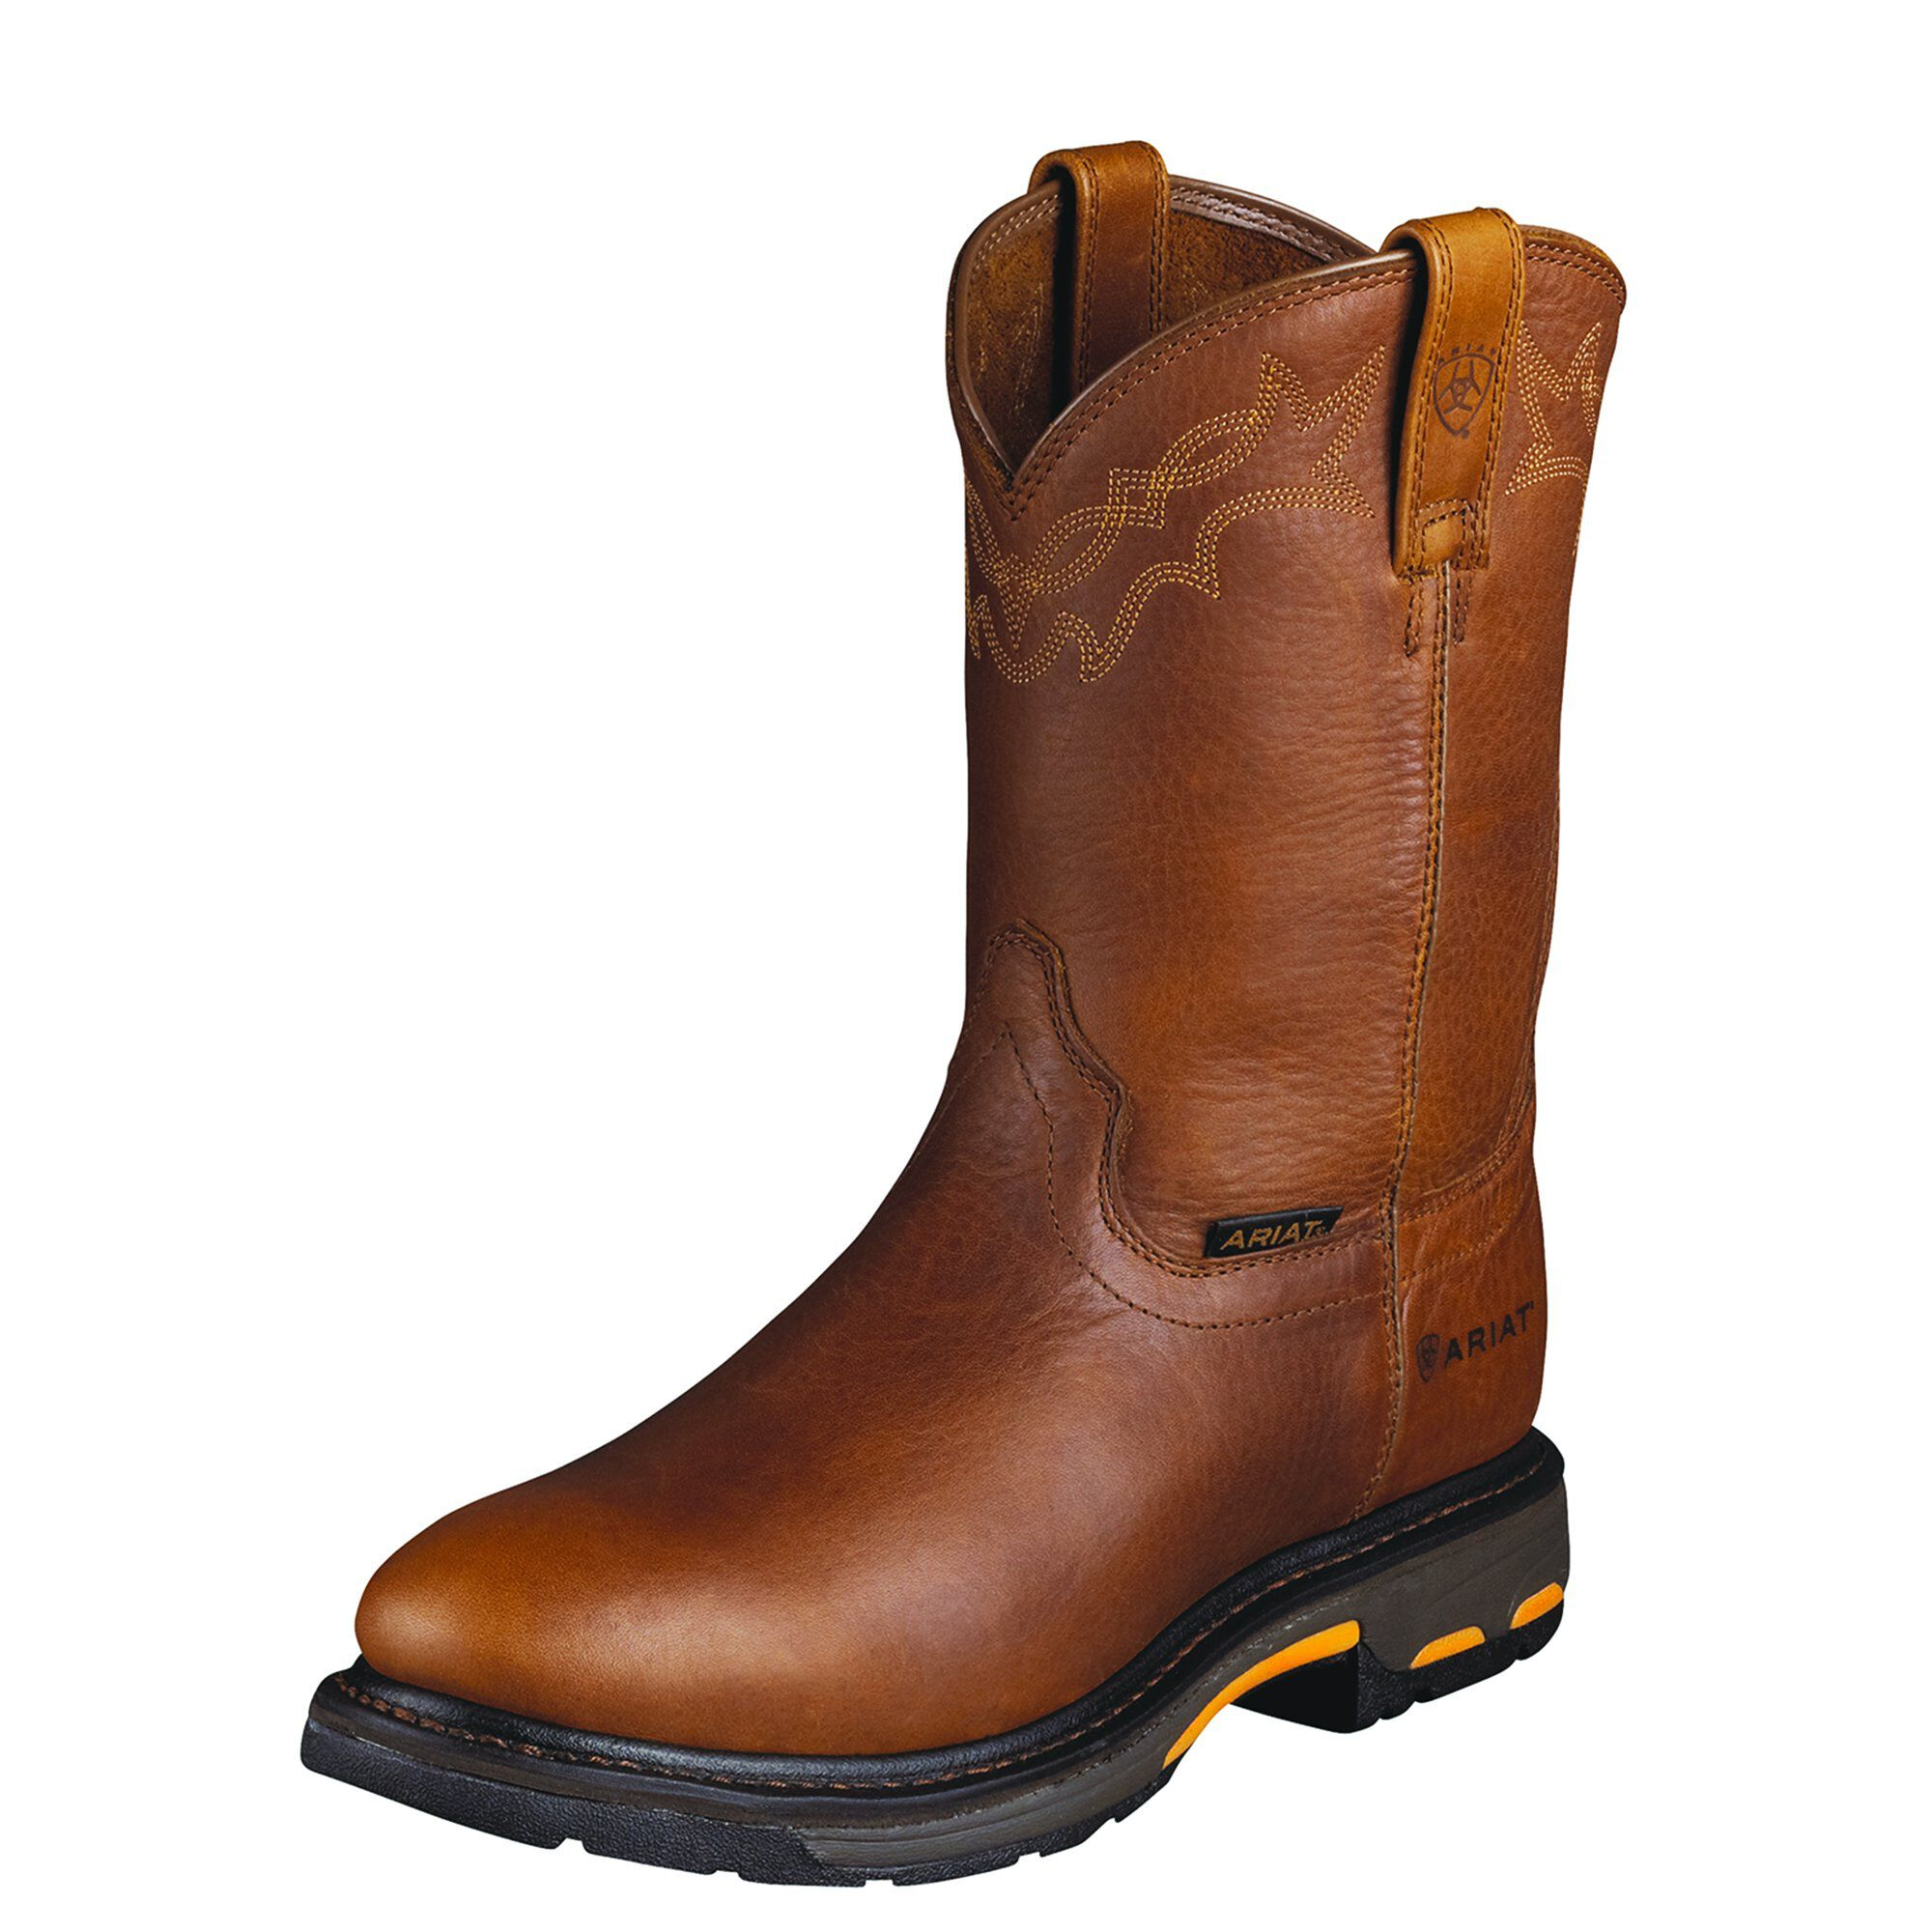 comforter blog ecco uses product walking ii for come track i boot have is litany across versatile built are a com comfortable and the of purposes that review shoestores boots most